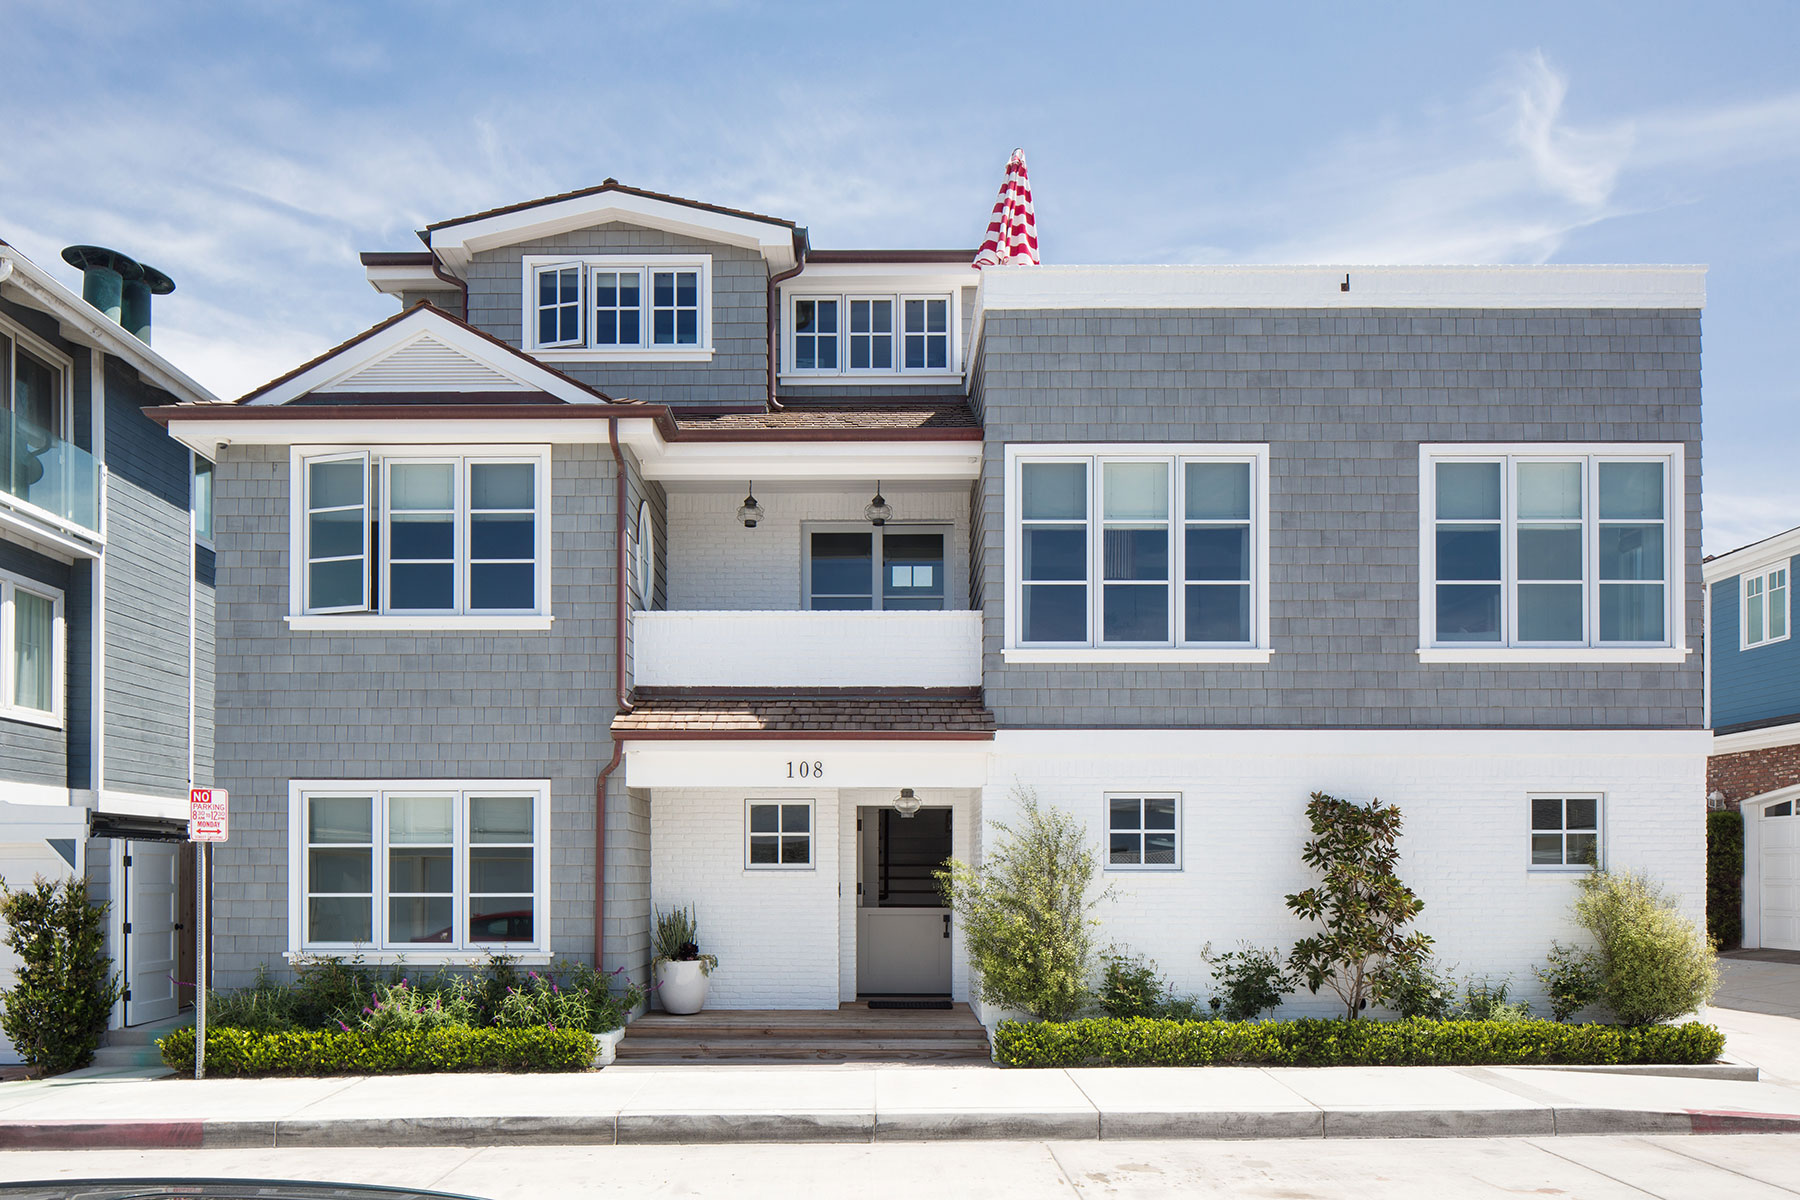 Single Family Home for Sale at 108 11th Street Newport Beach, California, 92661 United States